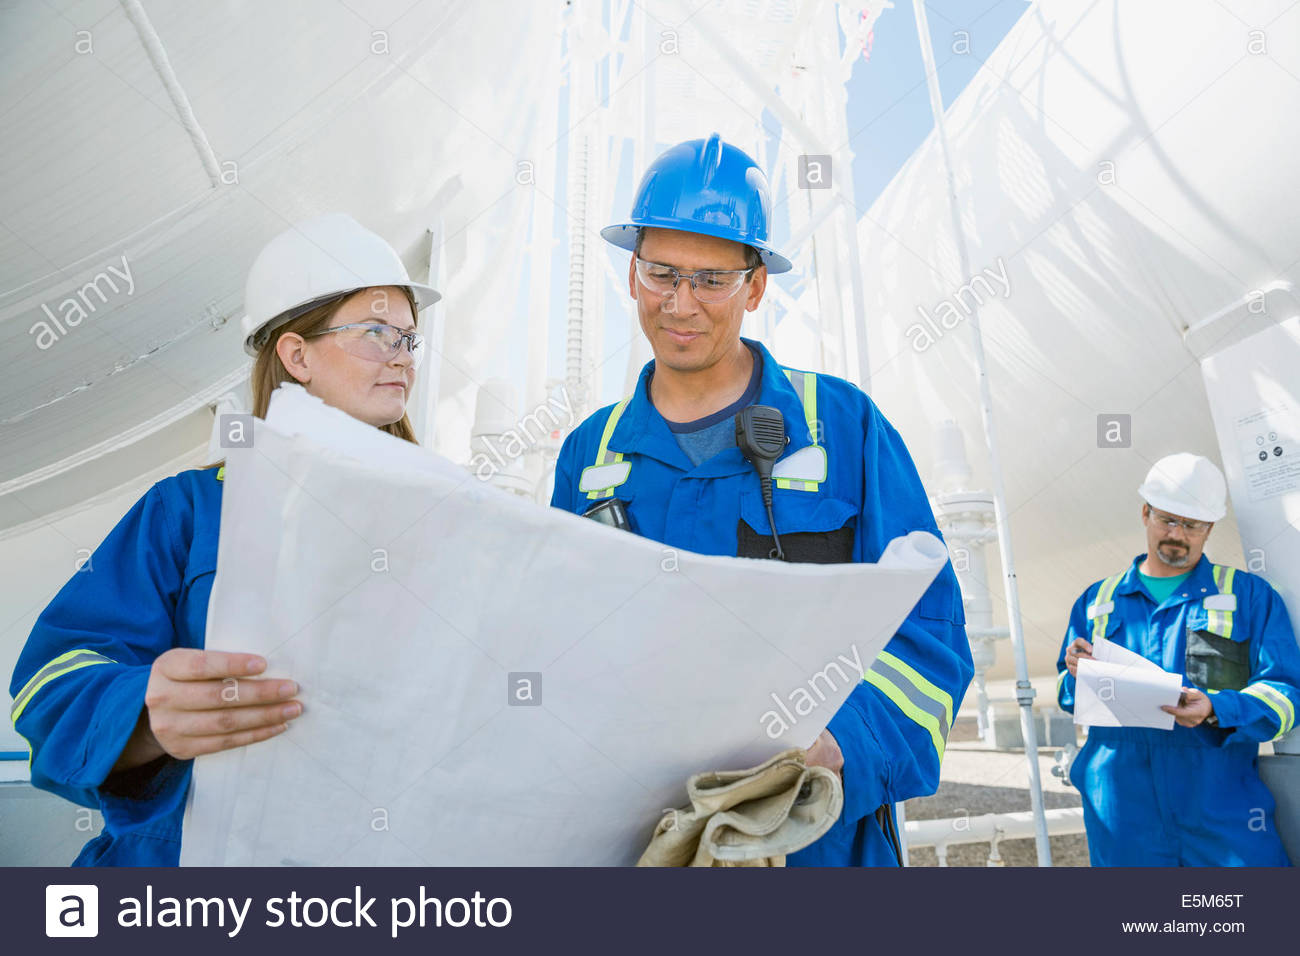 Workers reviewing blueprints at gas plant - Stock Image